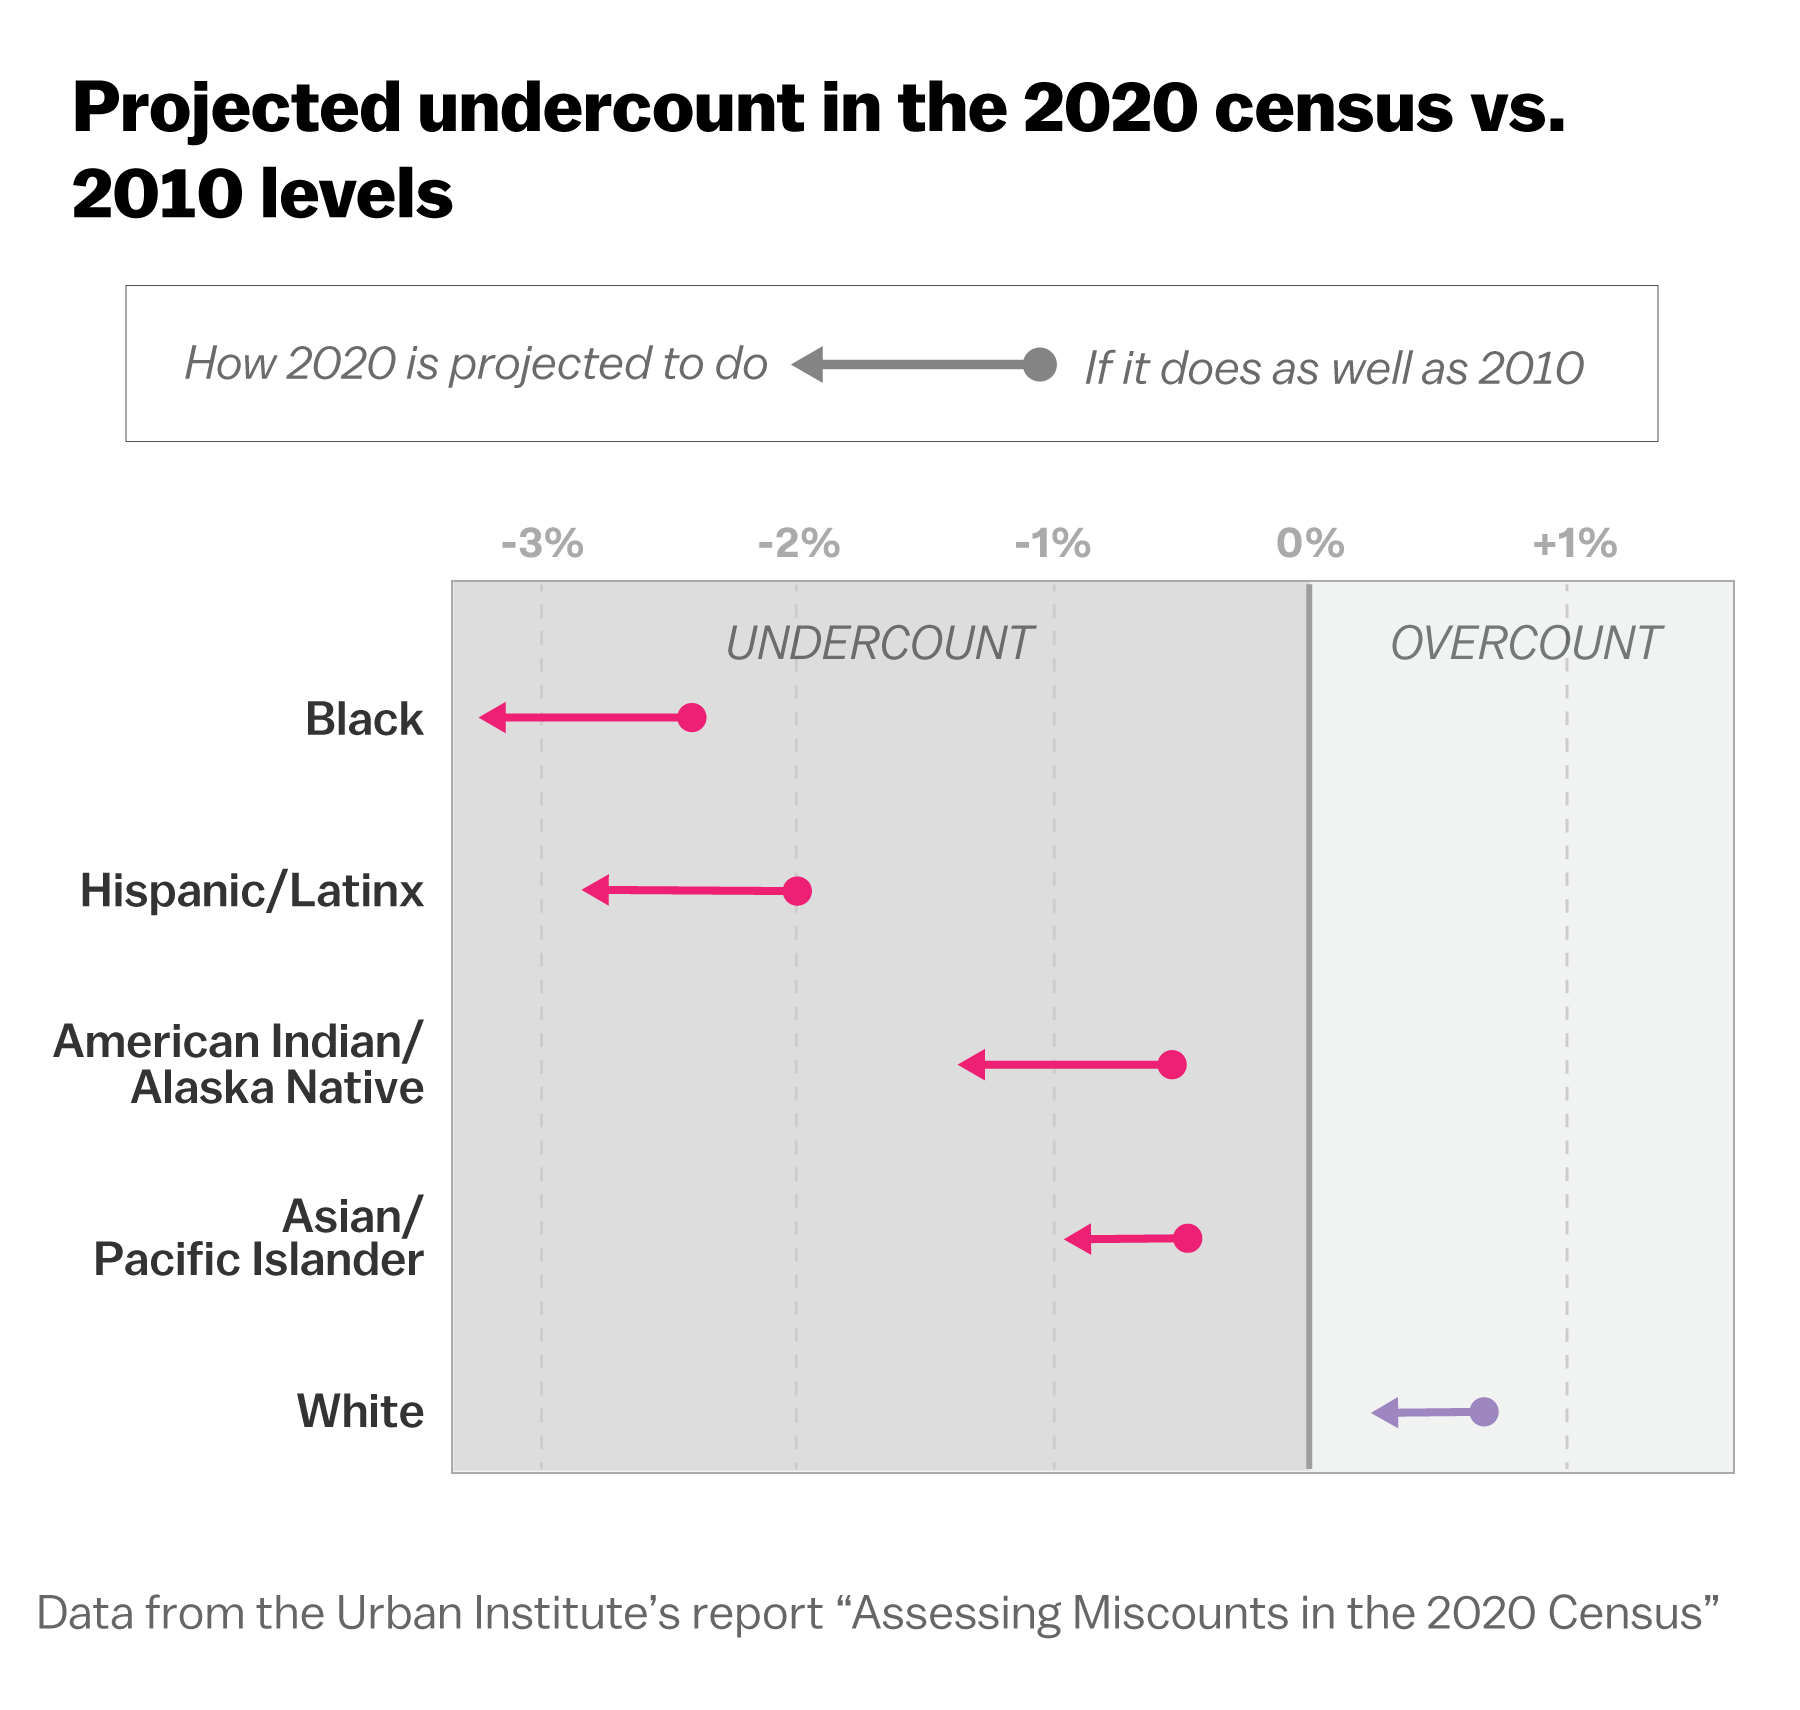 This chart shows how badly the census could undercount people of color